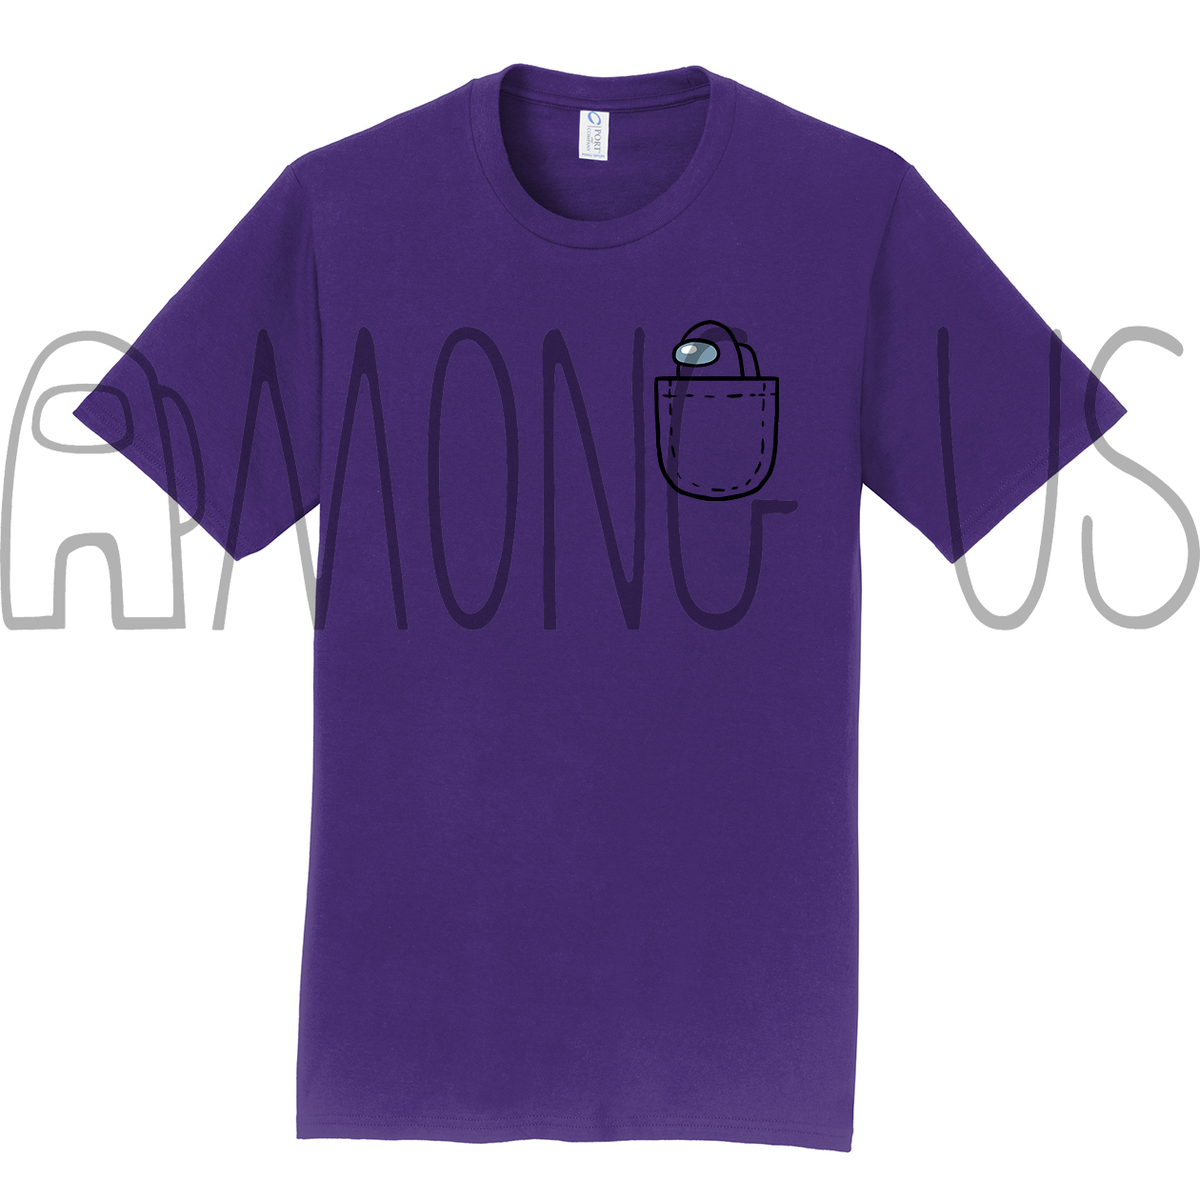 Among Us: Mini Crewmate Pocket Tee (Warm Colors)